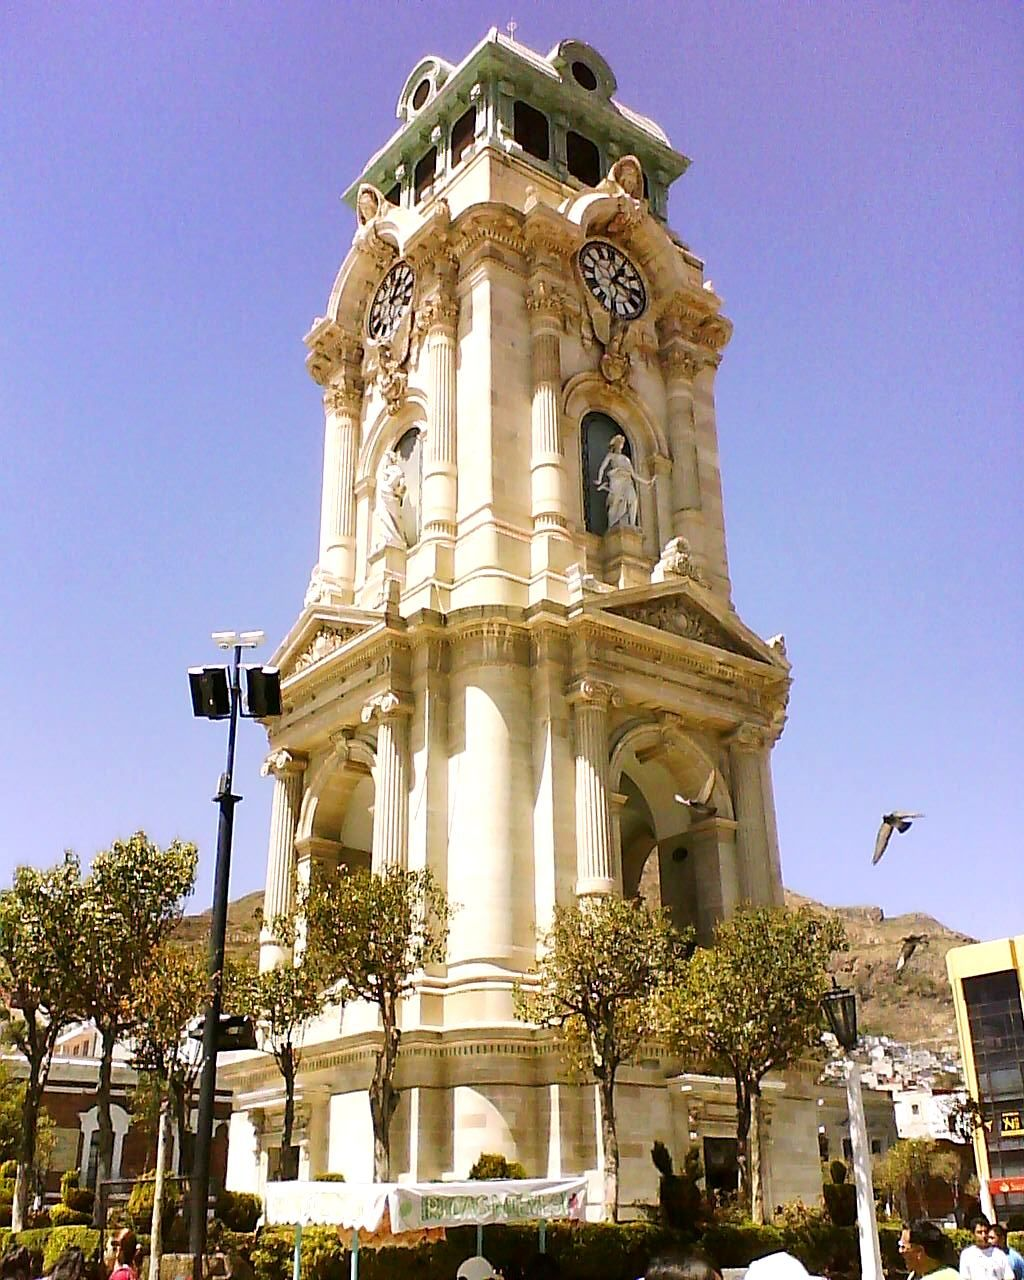 The Pachuca S Monumental Clock Is A Clock Tower 40 Meters High Located In Plaza Independencia Of The Historic Centre Of The Cit Historicas Artesanias Pachuca